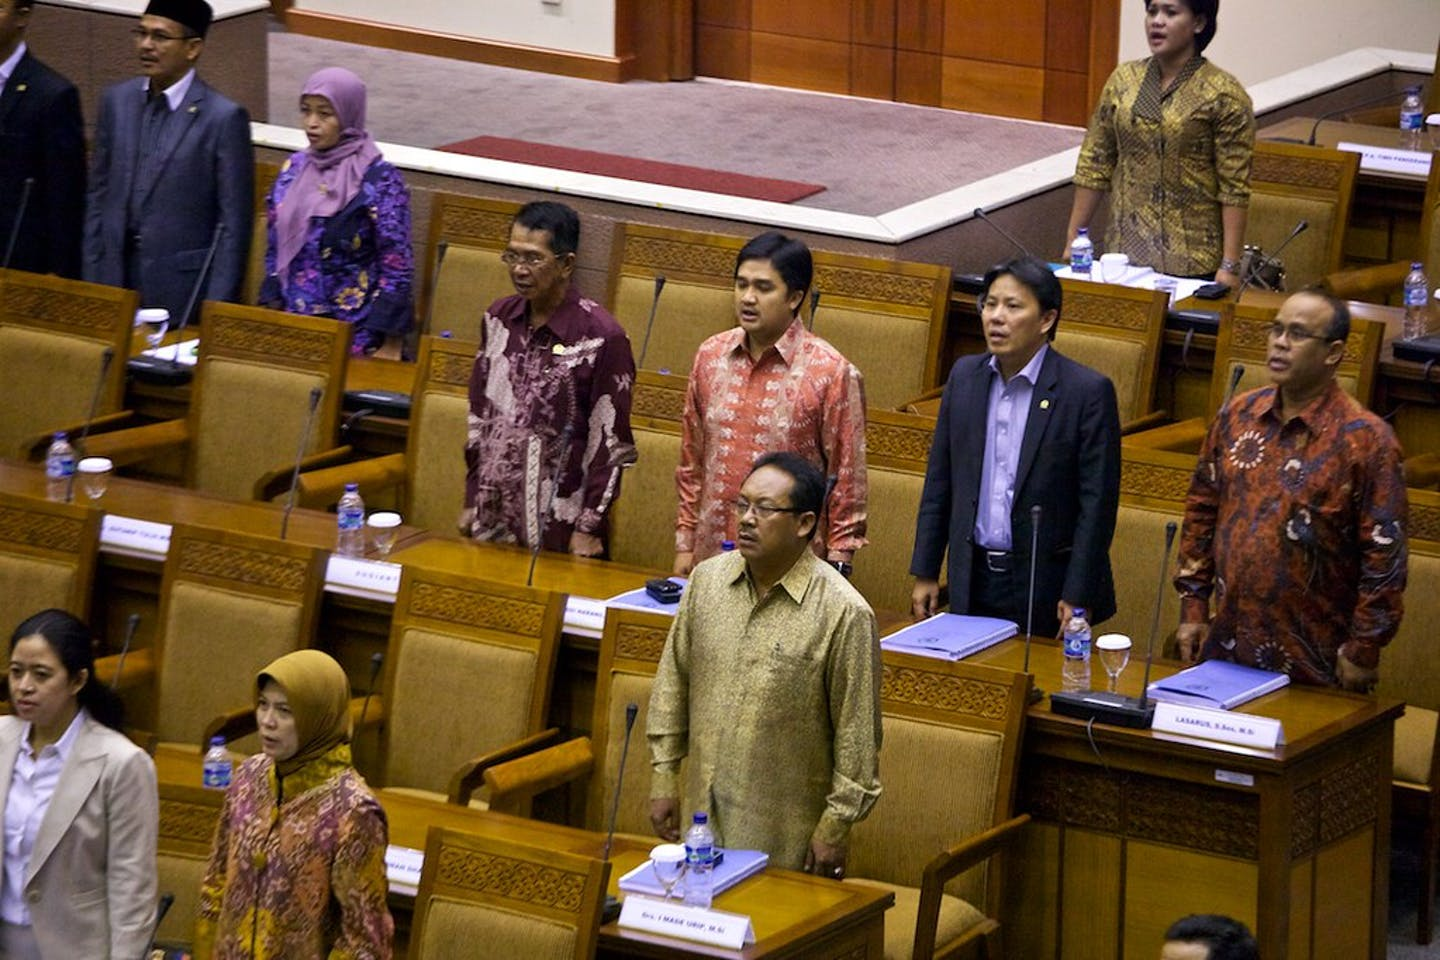 indonesian ratification of Comprehensive Nuclear-Test-Ban Treaty 2012